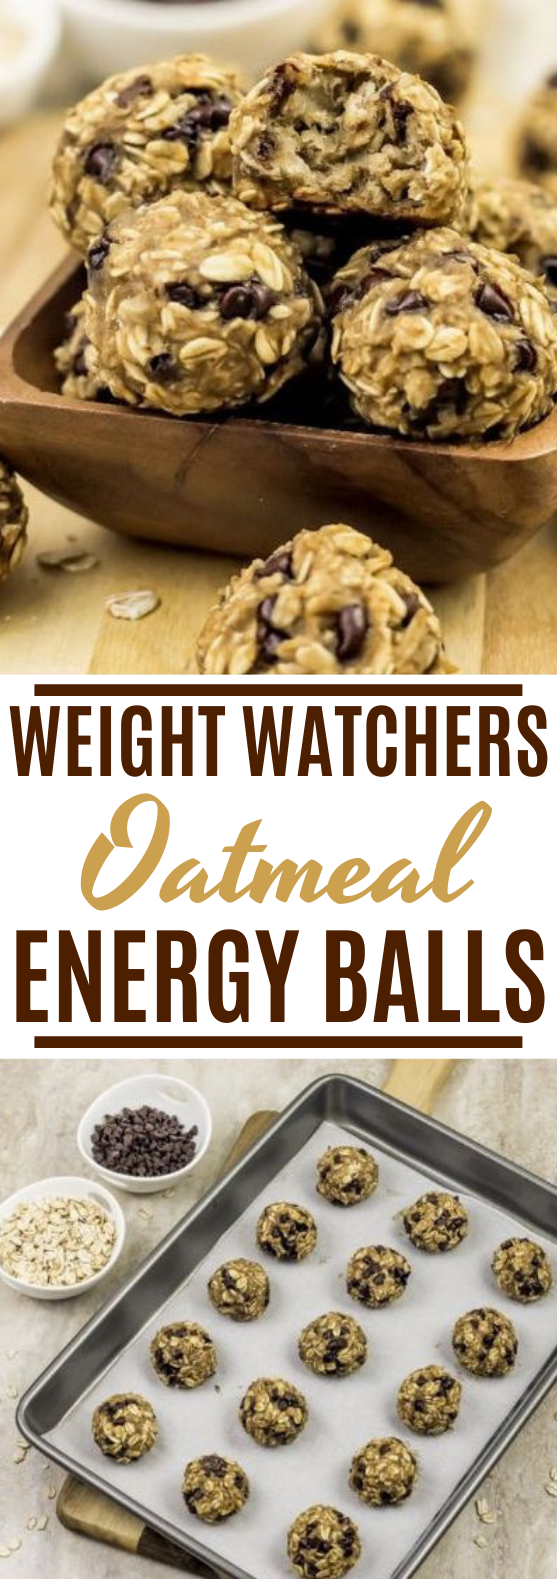 Weight Watchers Energy Balls #healthy #snacks #peanutbutter #keto #breakfast